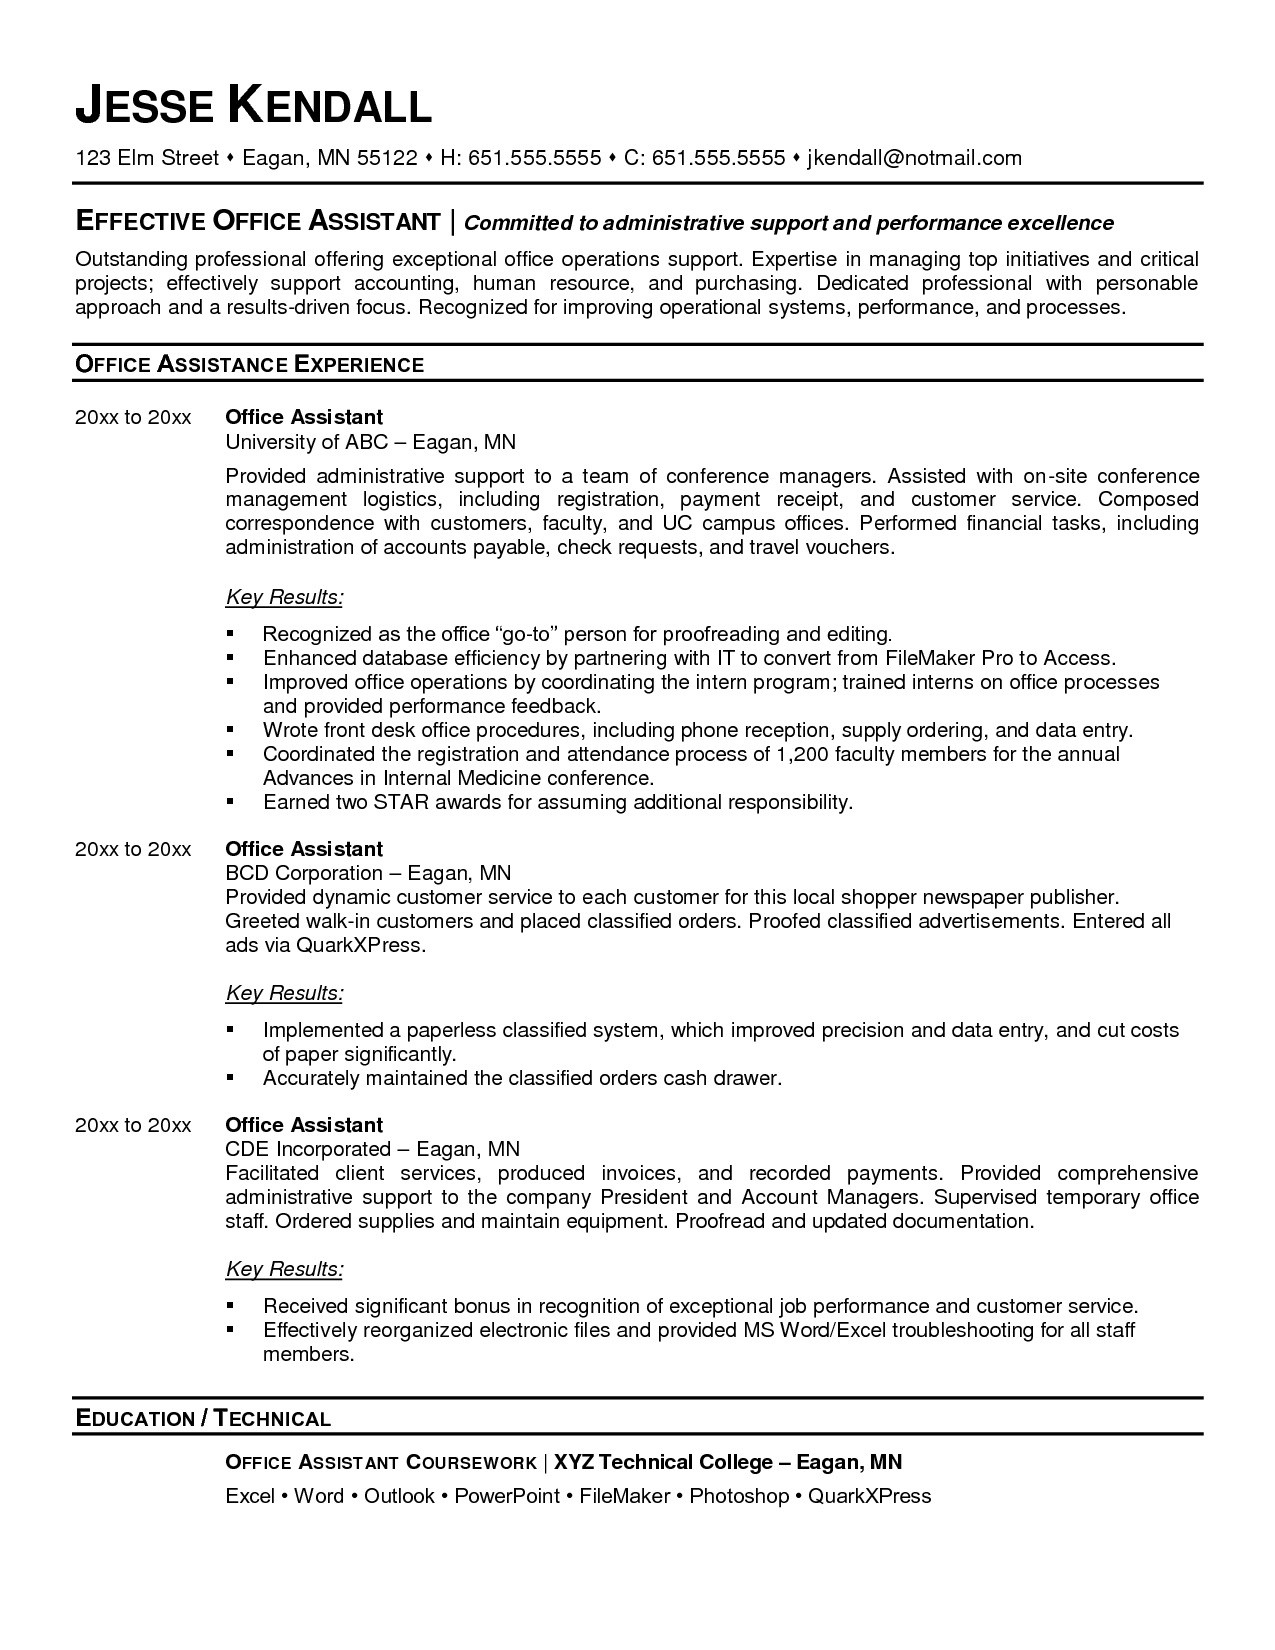 Medical Office assistant Resumes - Medical Fice Manager Resume Examples New Medical Fice assistant